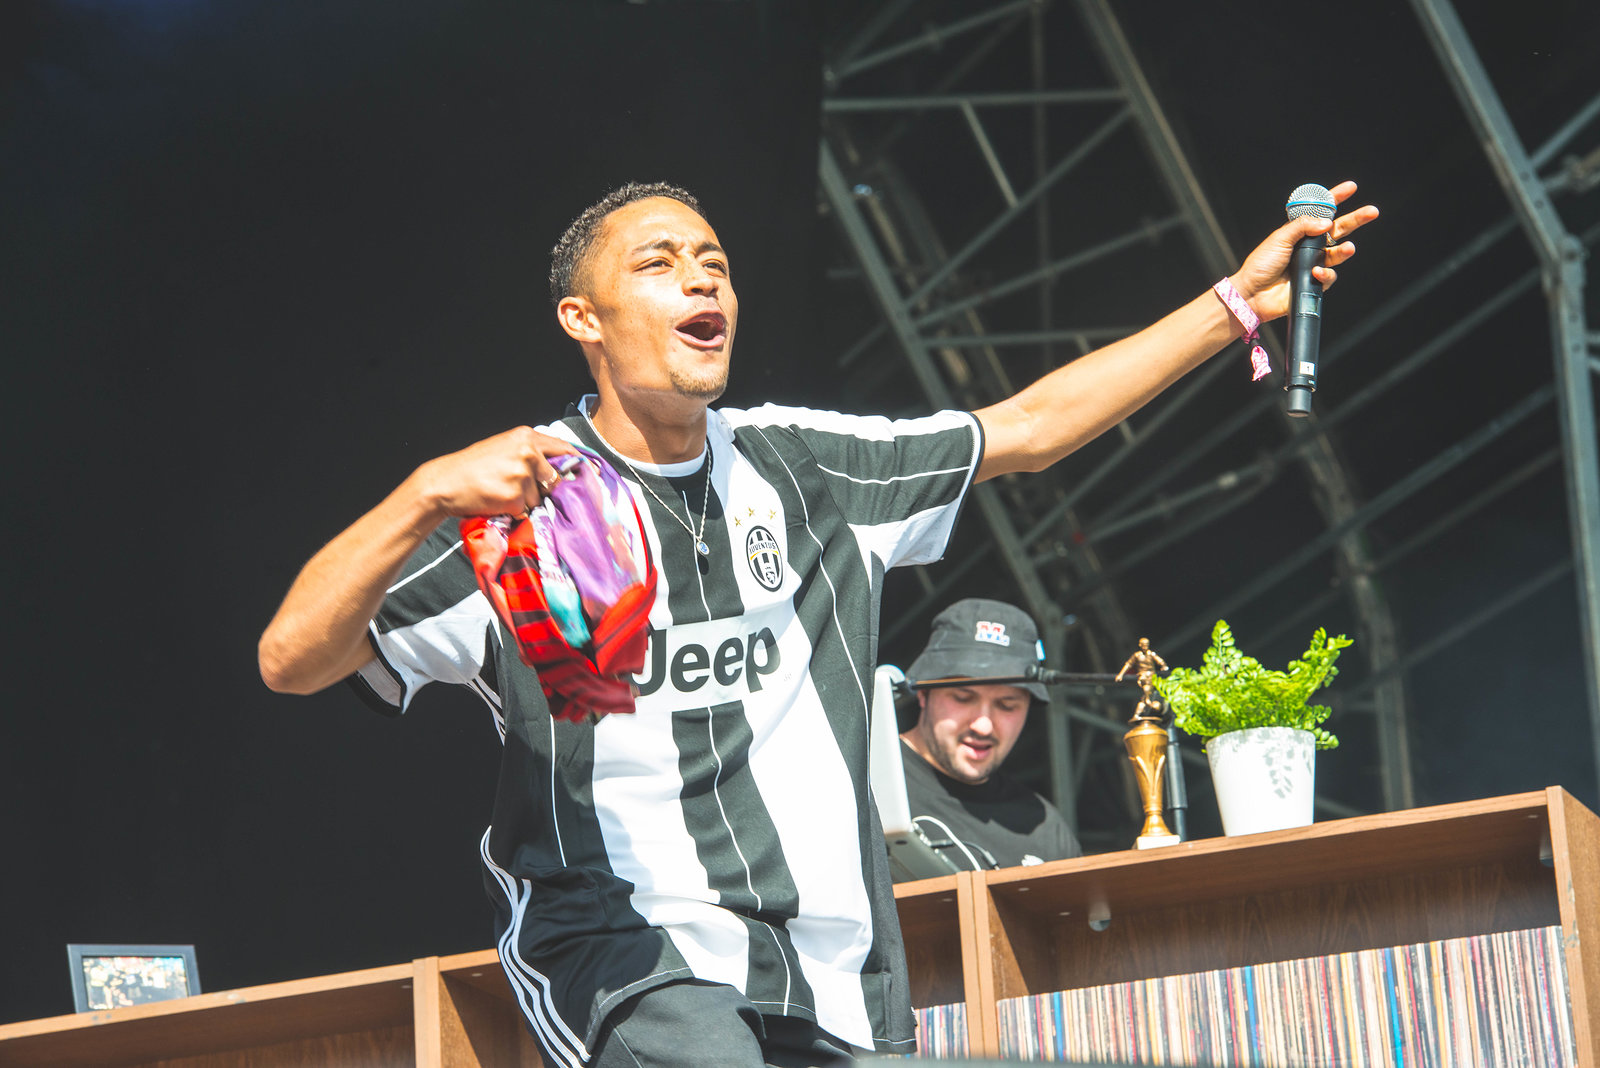 Loyle Carner at Field Day 2017